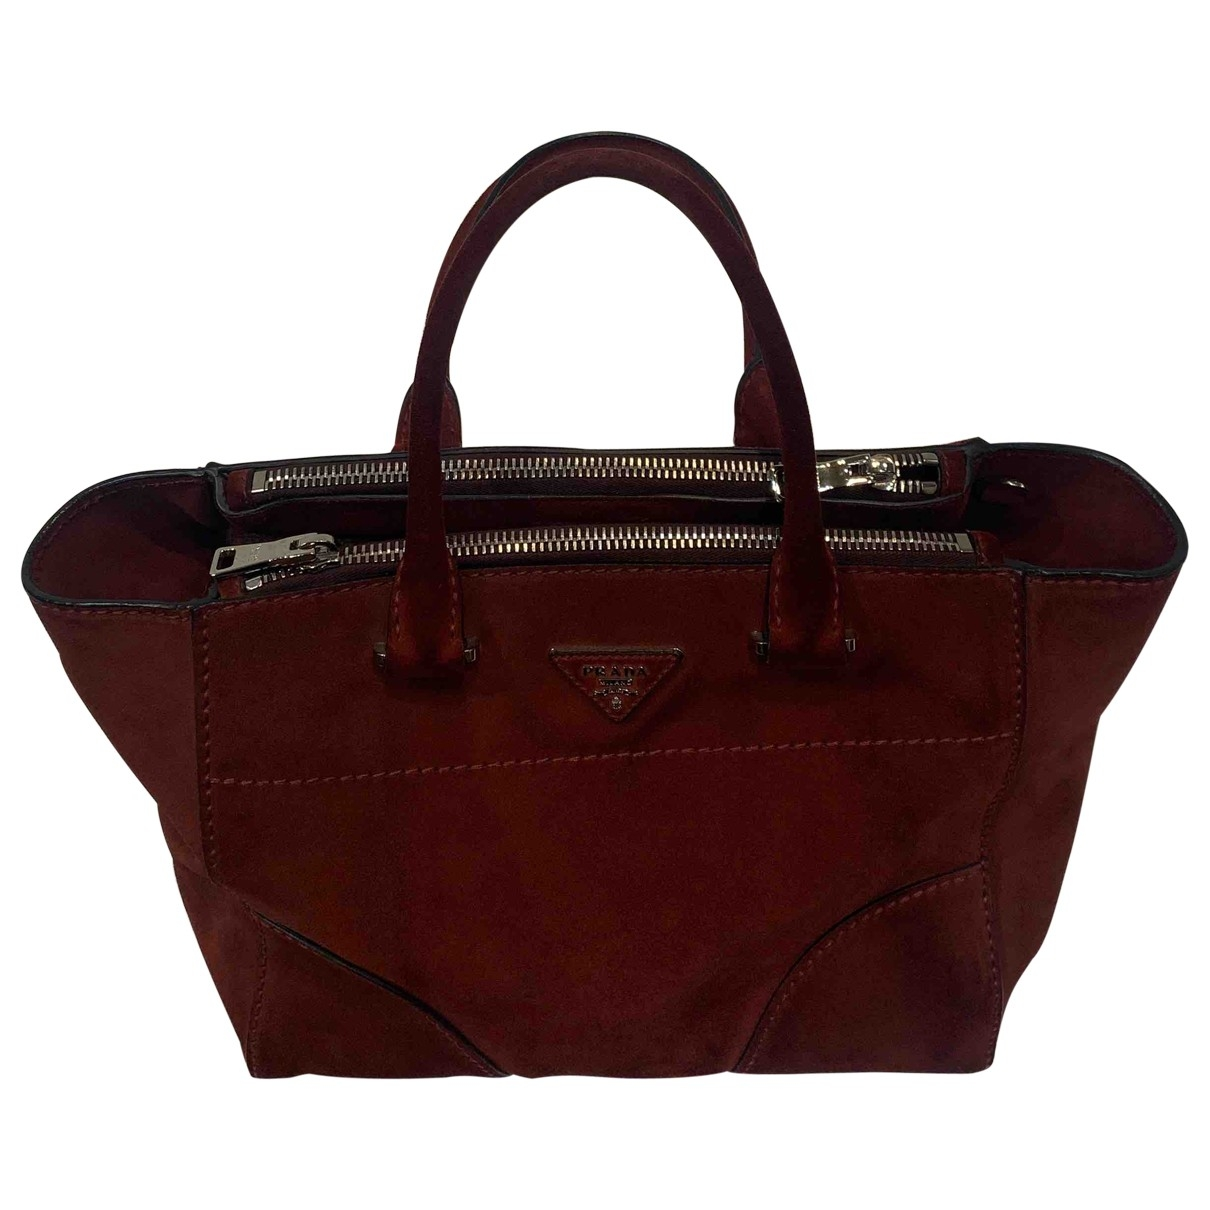 Prada \N Burgundy Suede handbag for Women \N